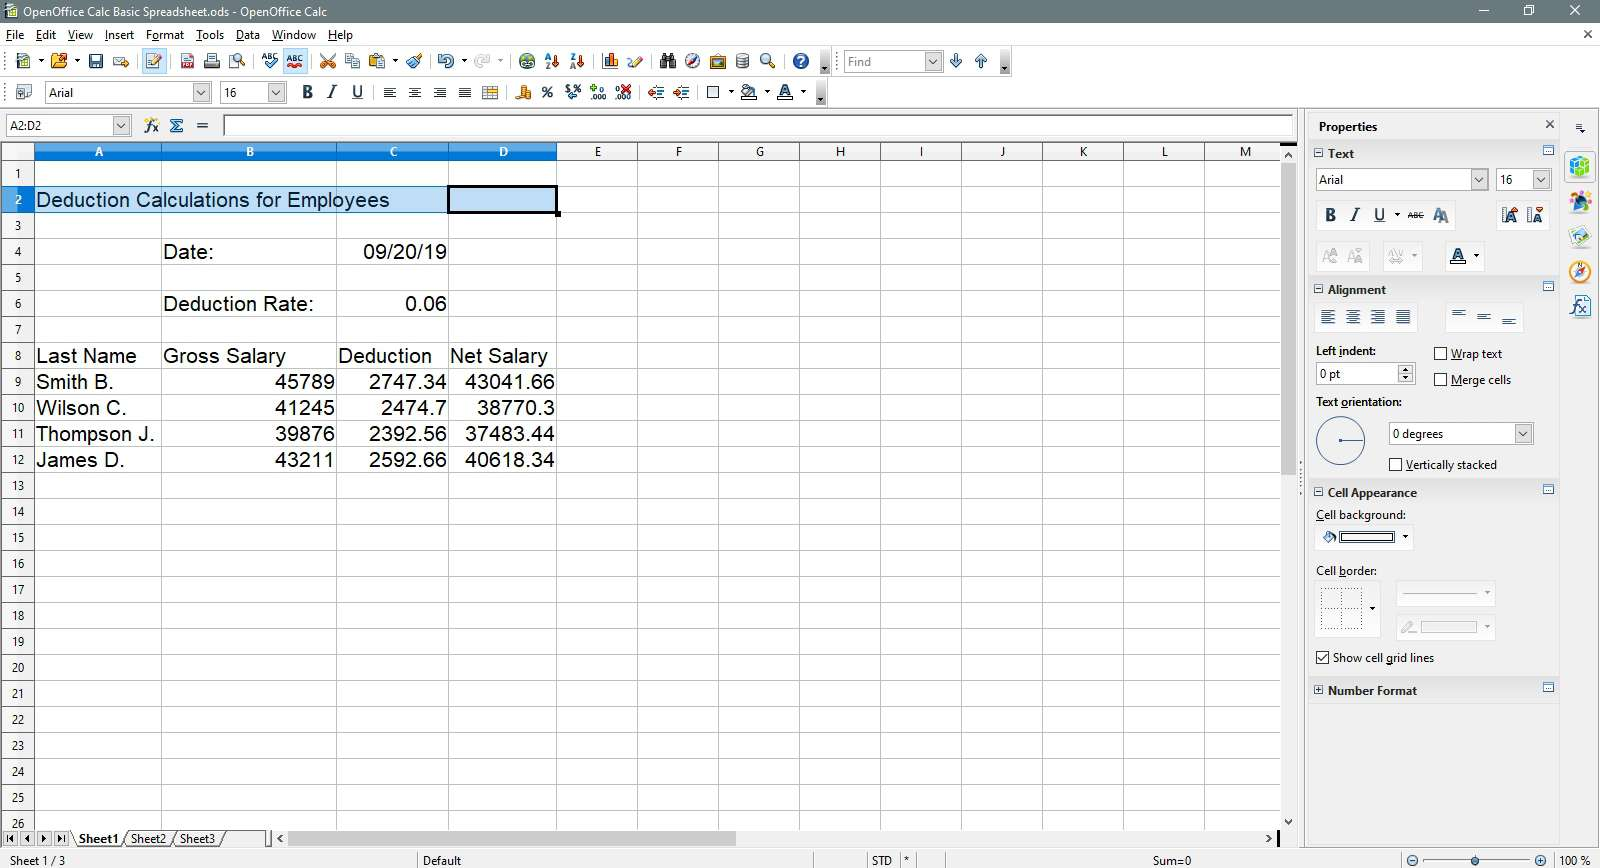 A ranged of cells has been selected. in OpenOffice Calc.